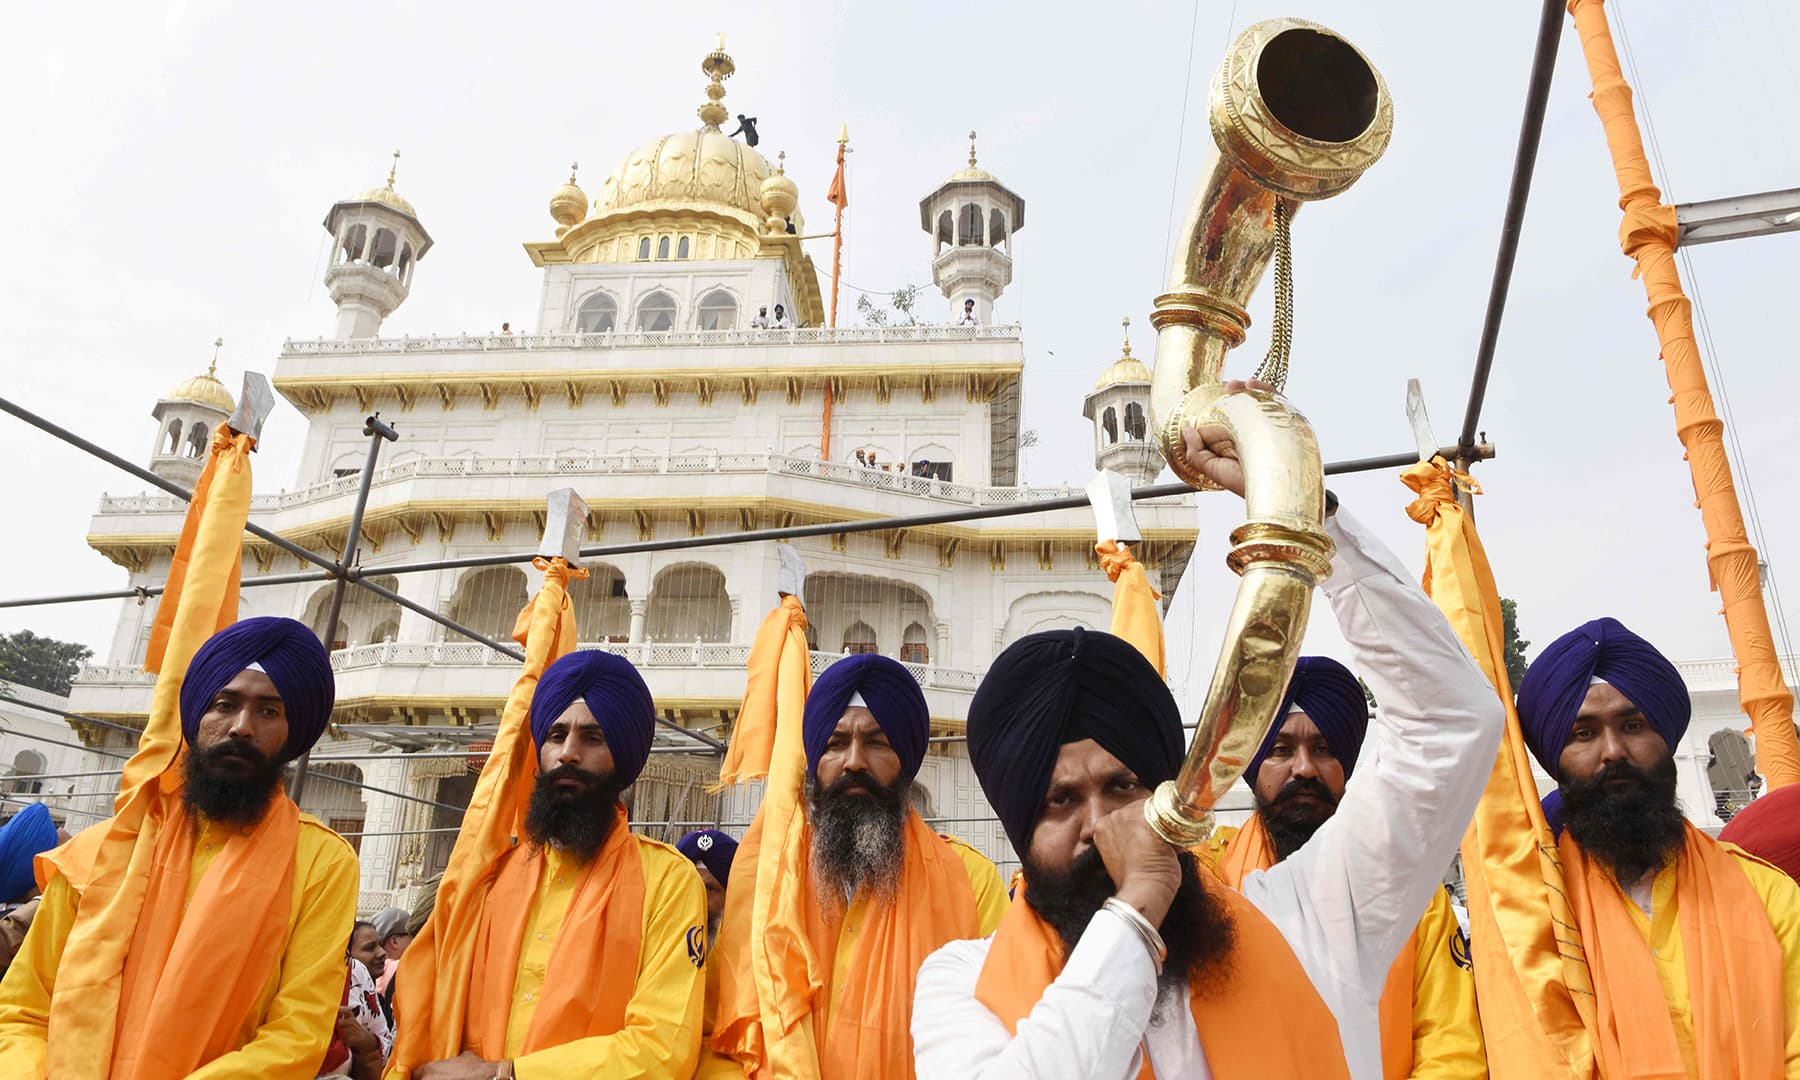 "TOPSHOT - A Sikh devotee plays a musical instrument (C) along with Sikh holy men known as 'Panj Pyare' as they hold Sikh religious flags during a ""Nagar Kirtan"" (holy procession) on the eve of the 550th birth anniversary of Sikhism founder Sri Guru Nanak Dev, at the Golden Temple in Amritsar on November 11, 2019. (Photo by NARINDER NANU / AFP) — AFP or licensors"